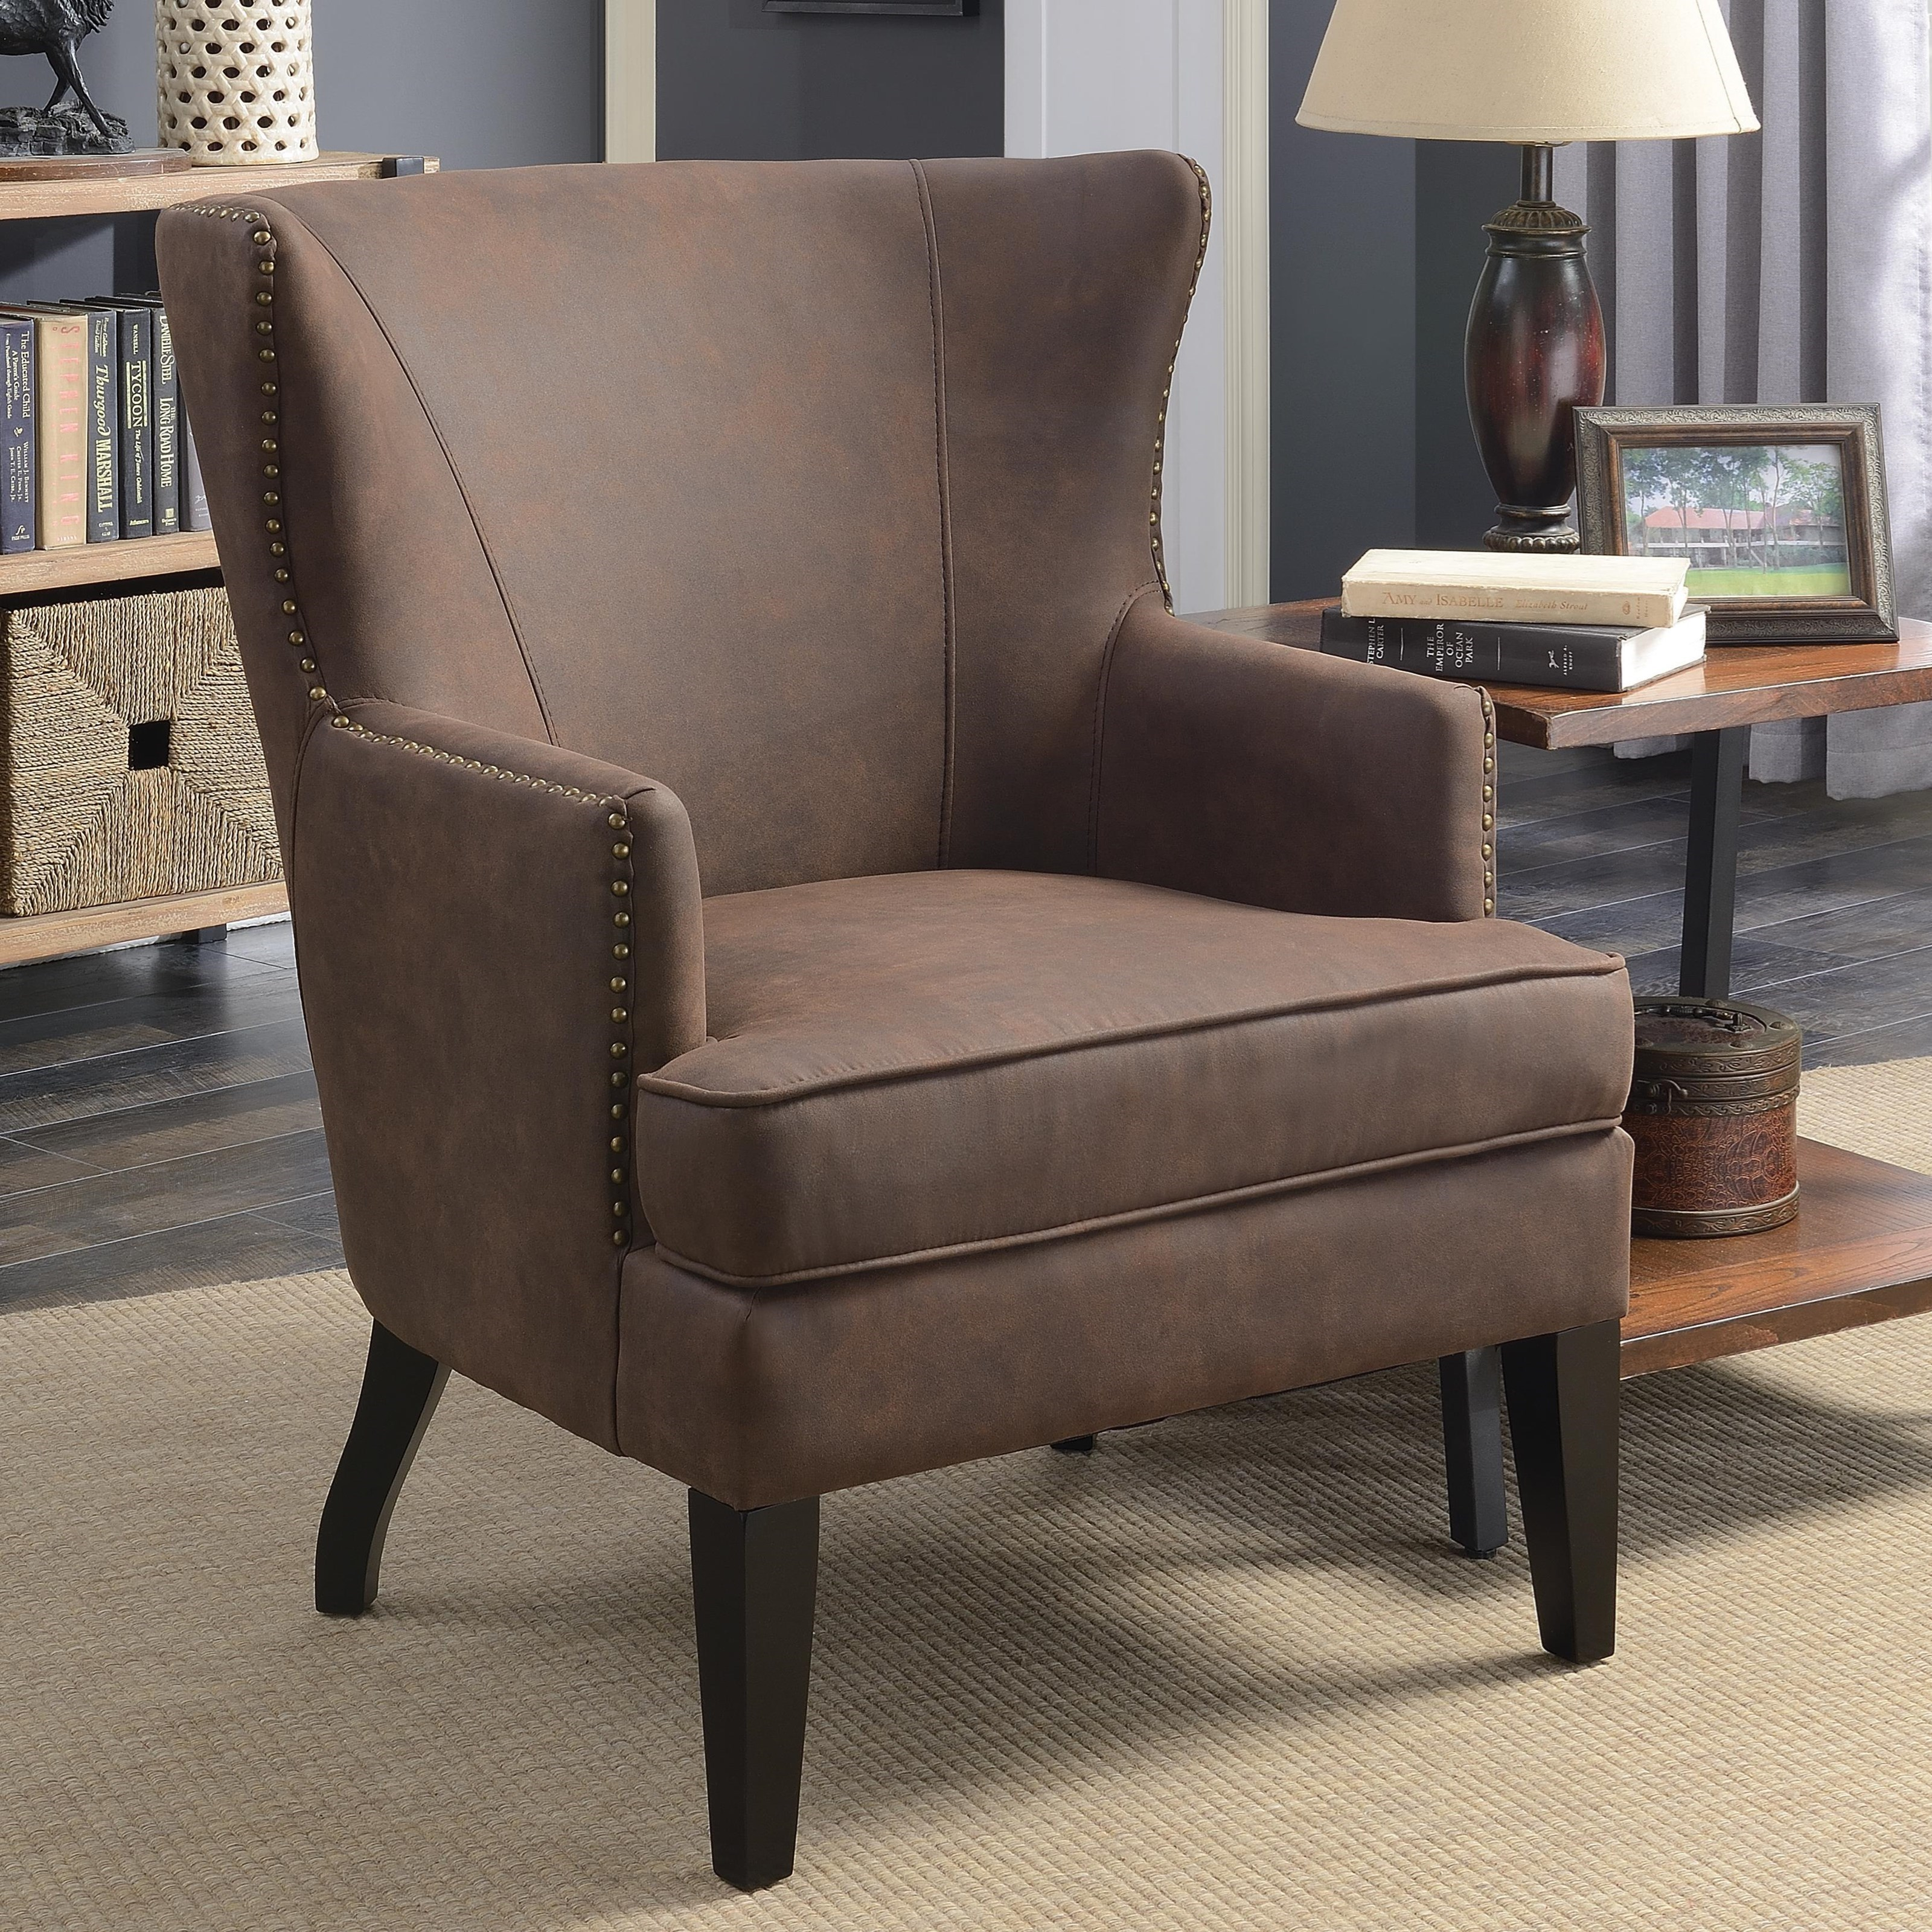 Coaster Accent Seating Accent Chair - Item Number: 903817